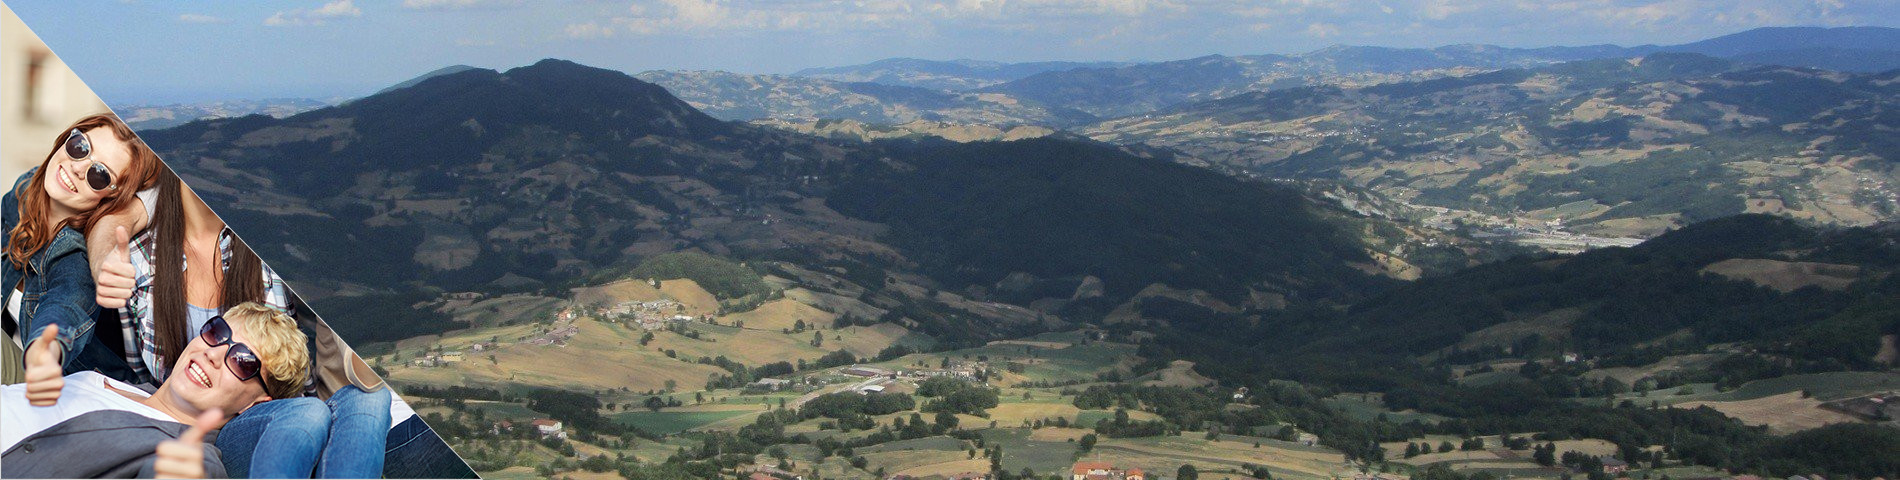 Bagno di Romagna - School Trips / Groups